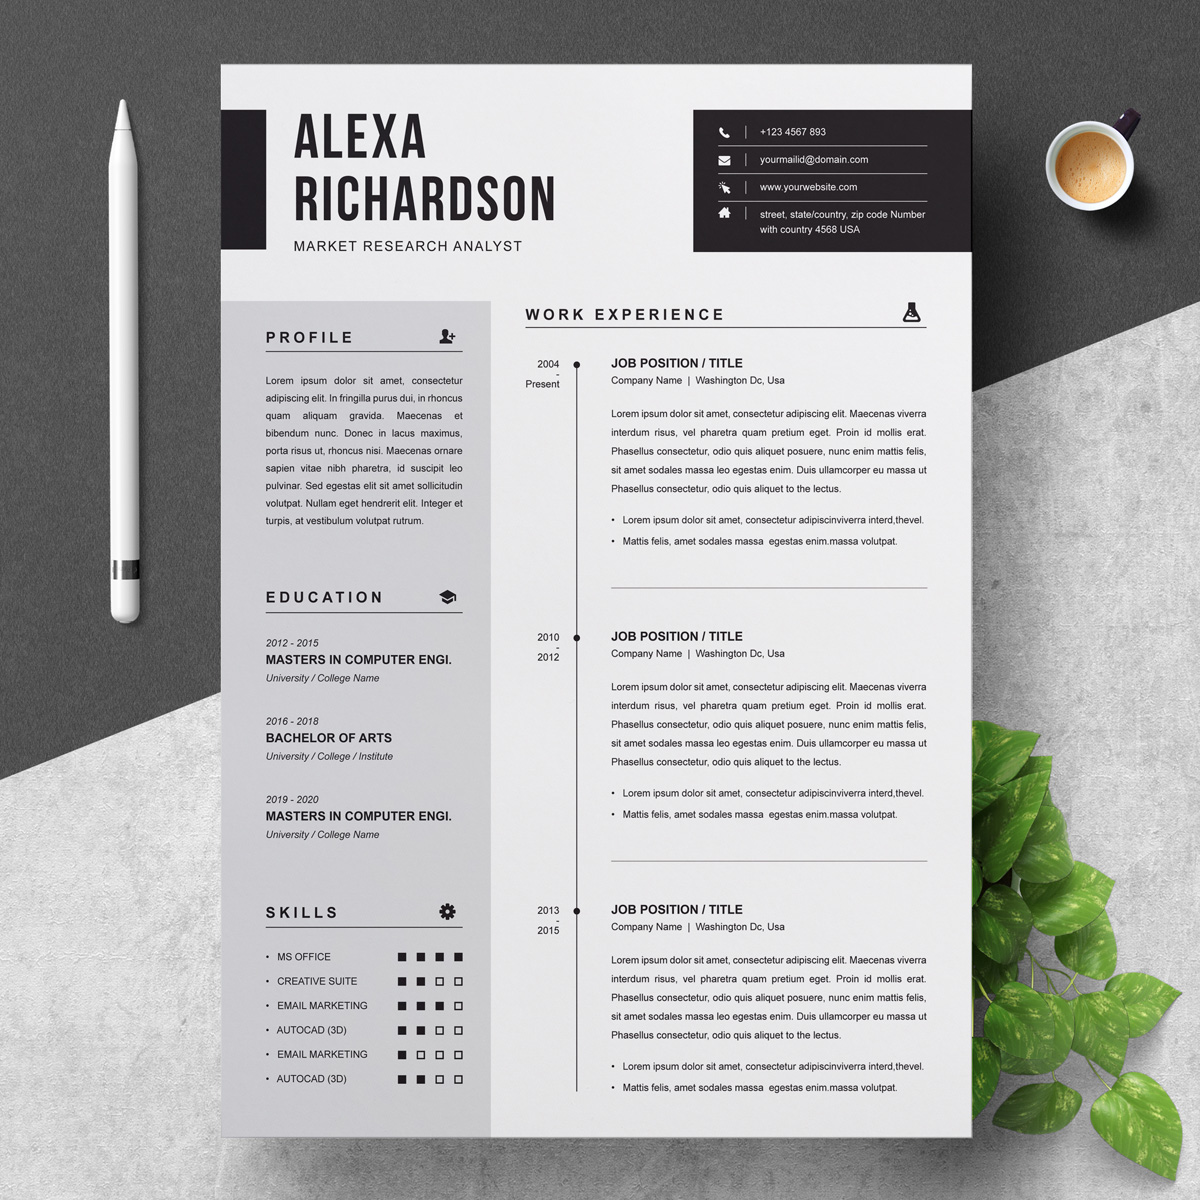 https://s3u.tmimgcdn.com/1860567-1561183259428_01_Clean-Professional-Creative-and-Modern-Resume-CV-Curriculum-Vitae-Design-Template-MS-Word-Apple-Pages-PSD-Free-Download.jpg